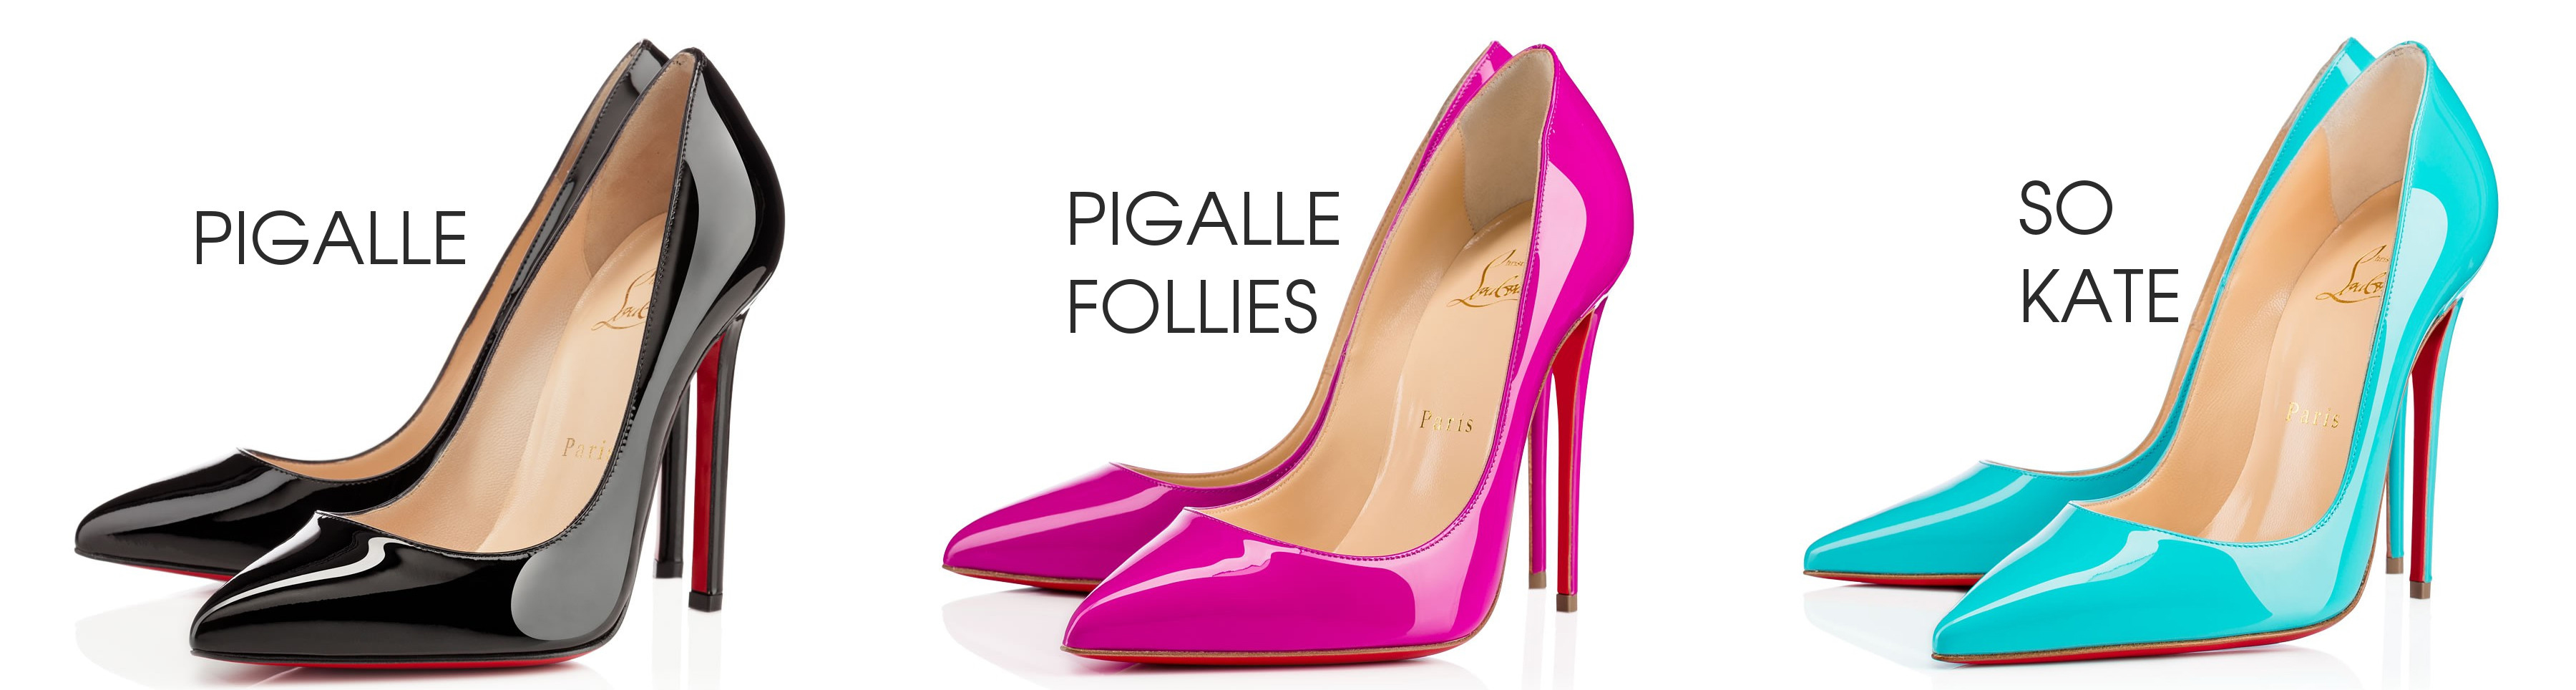 The Difference of Pigalle, Pigalle Follies and So Kate